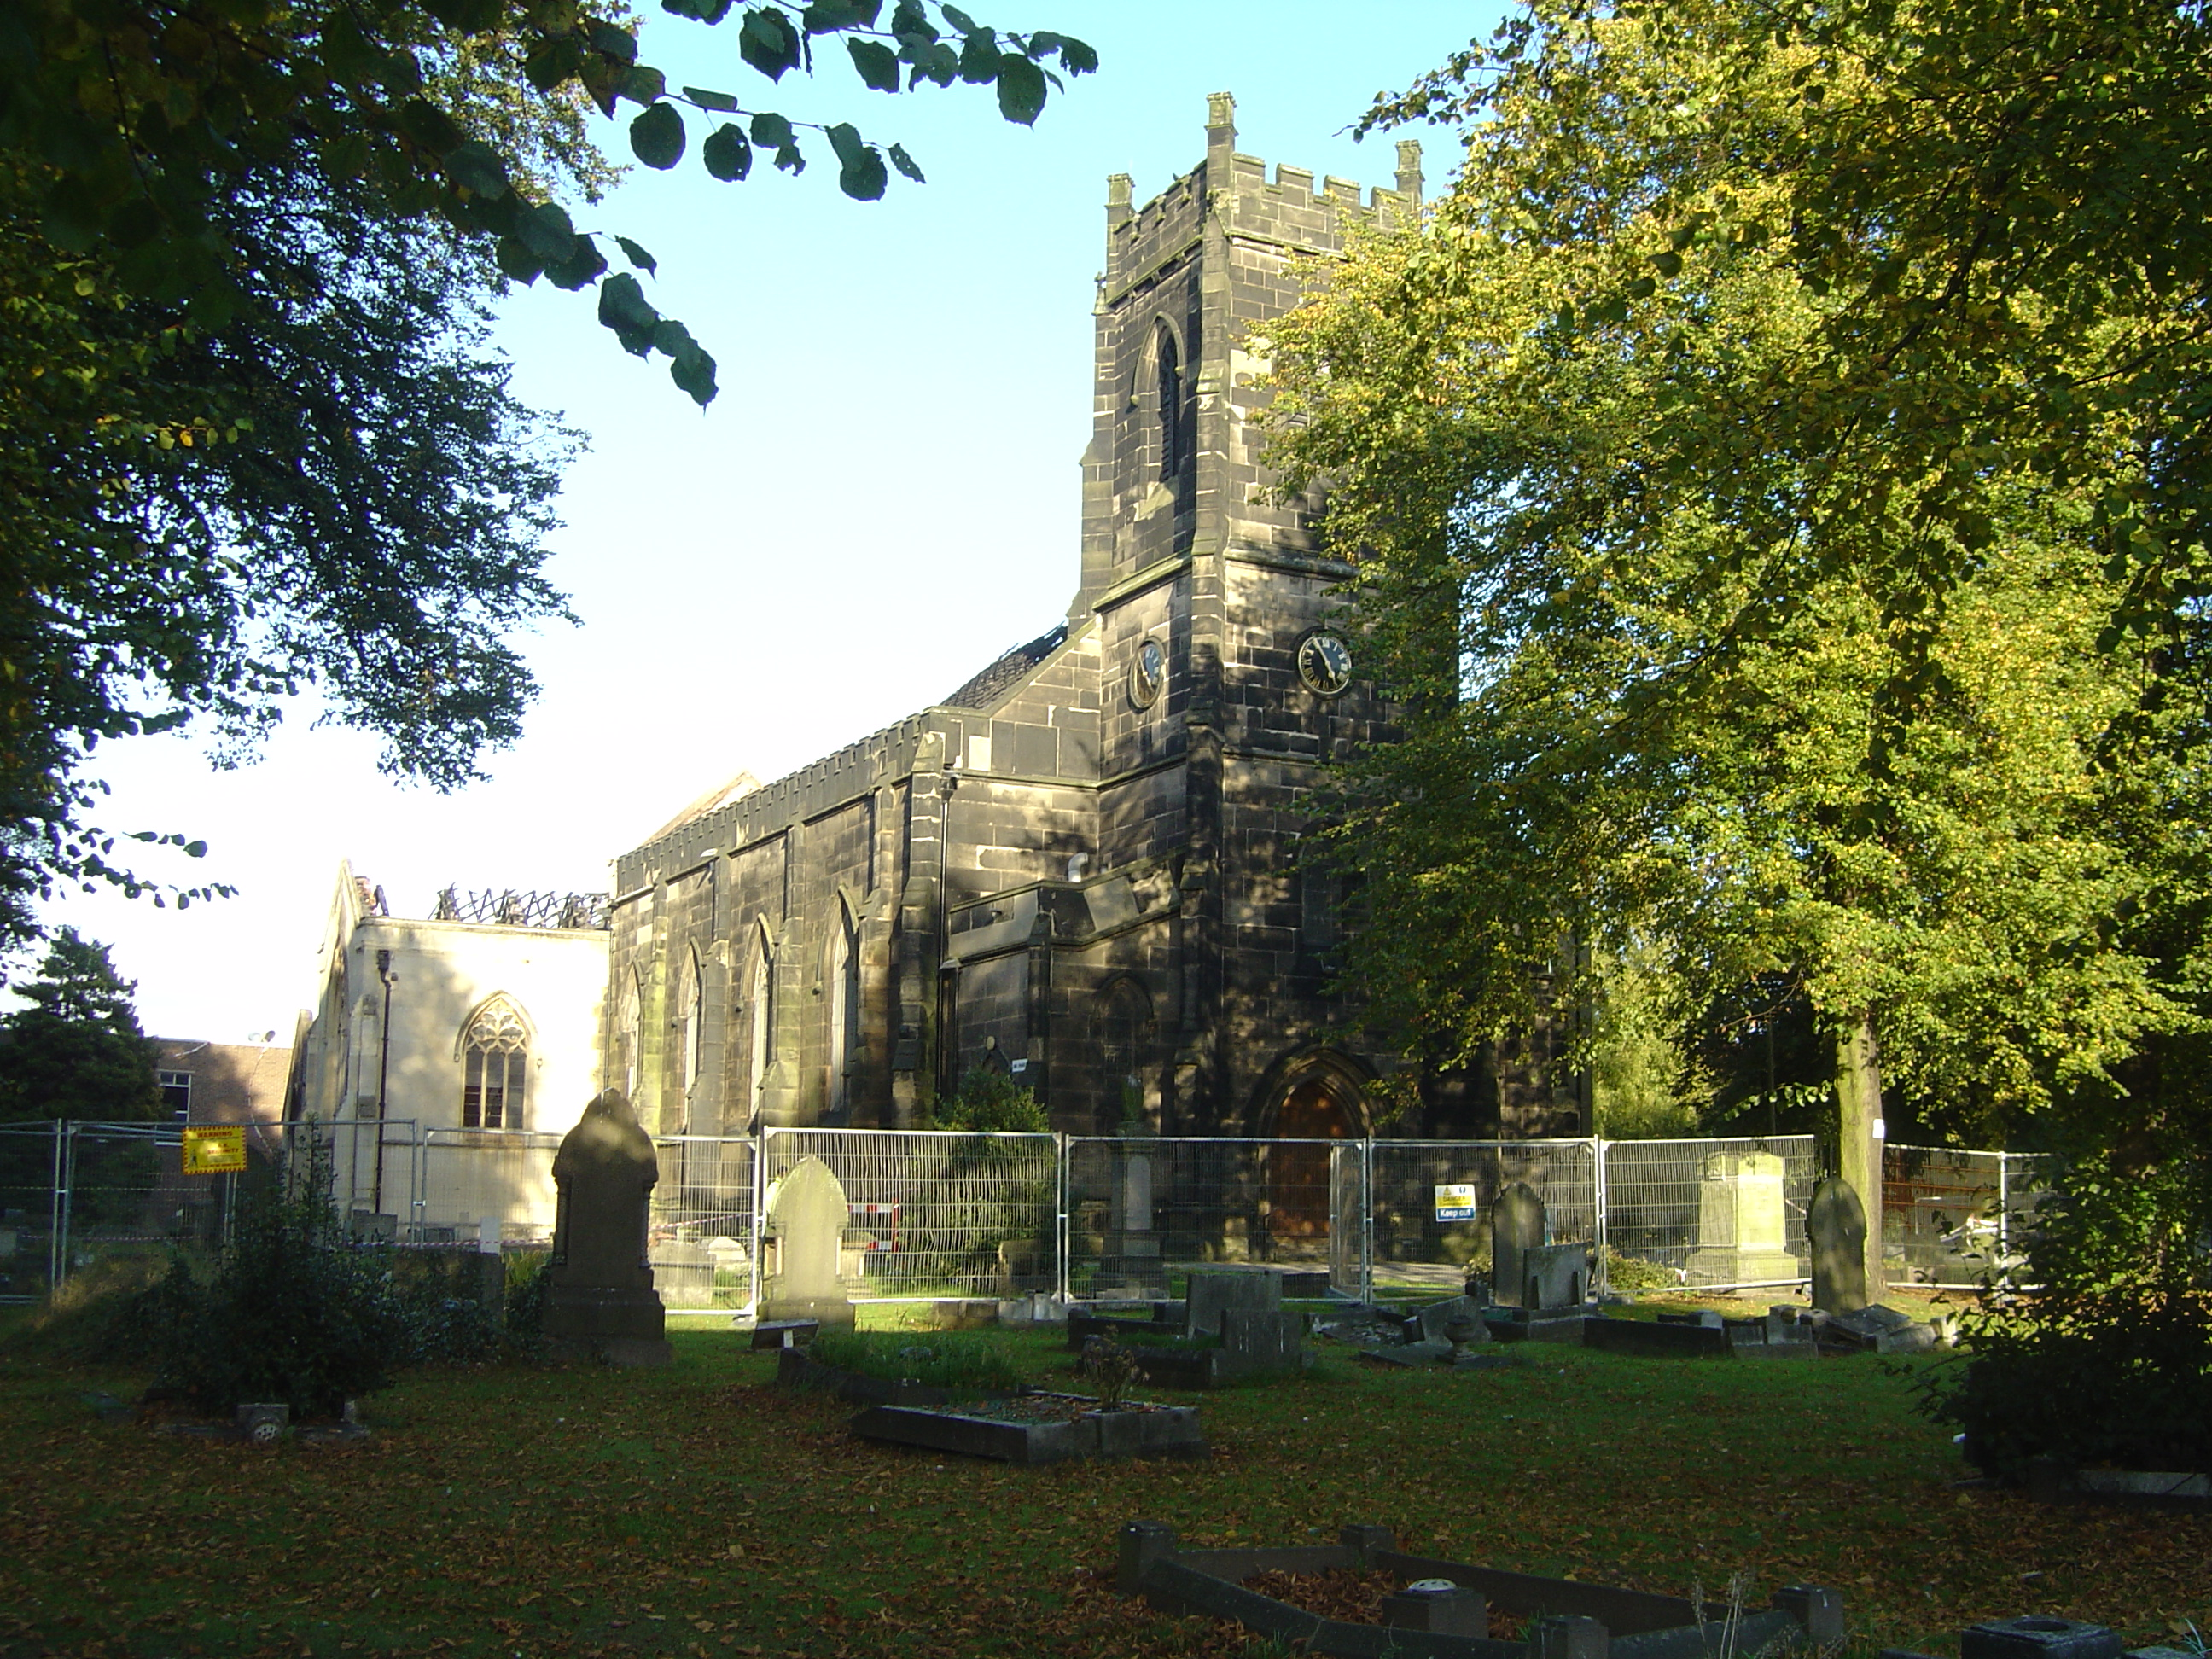 st barnabas Events: 22nd sunday in ordinary time september 2, 2018 always check the bulletin for what's going on in the parish the bulletin can be viewed on this website and available at the church entrances.